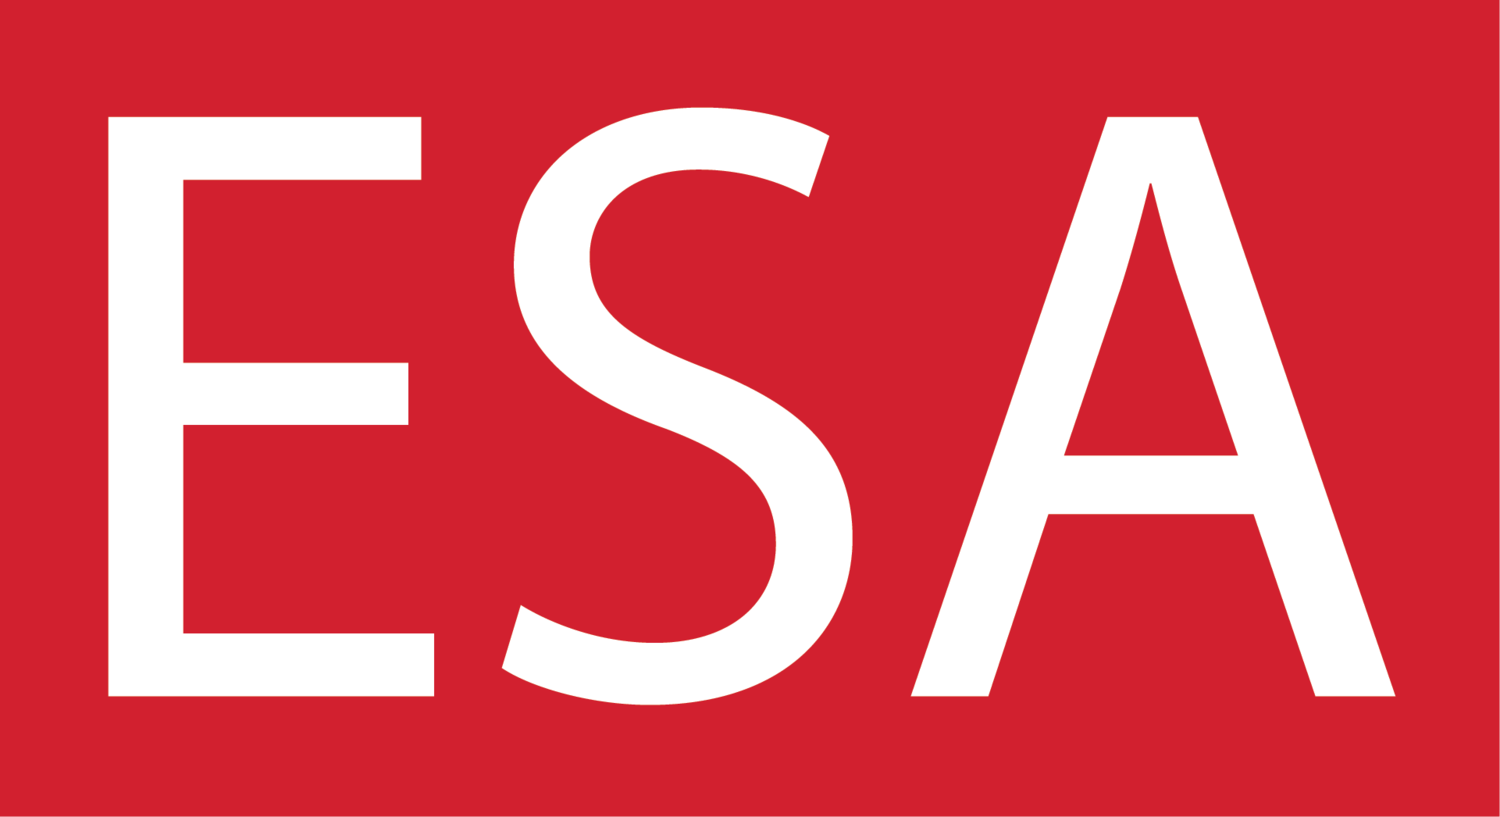 Economics Students' Association